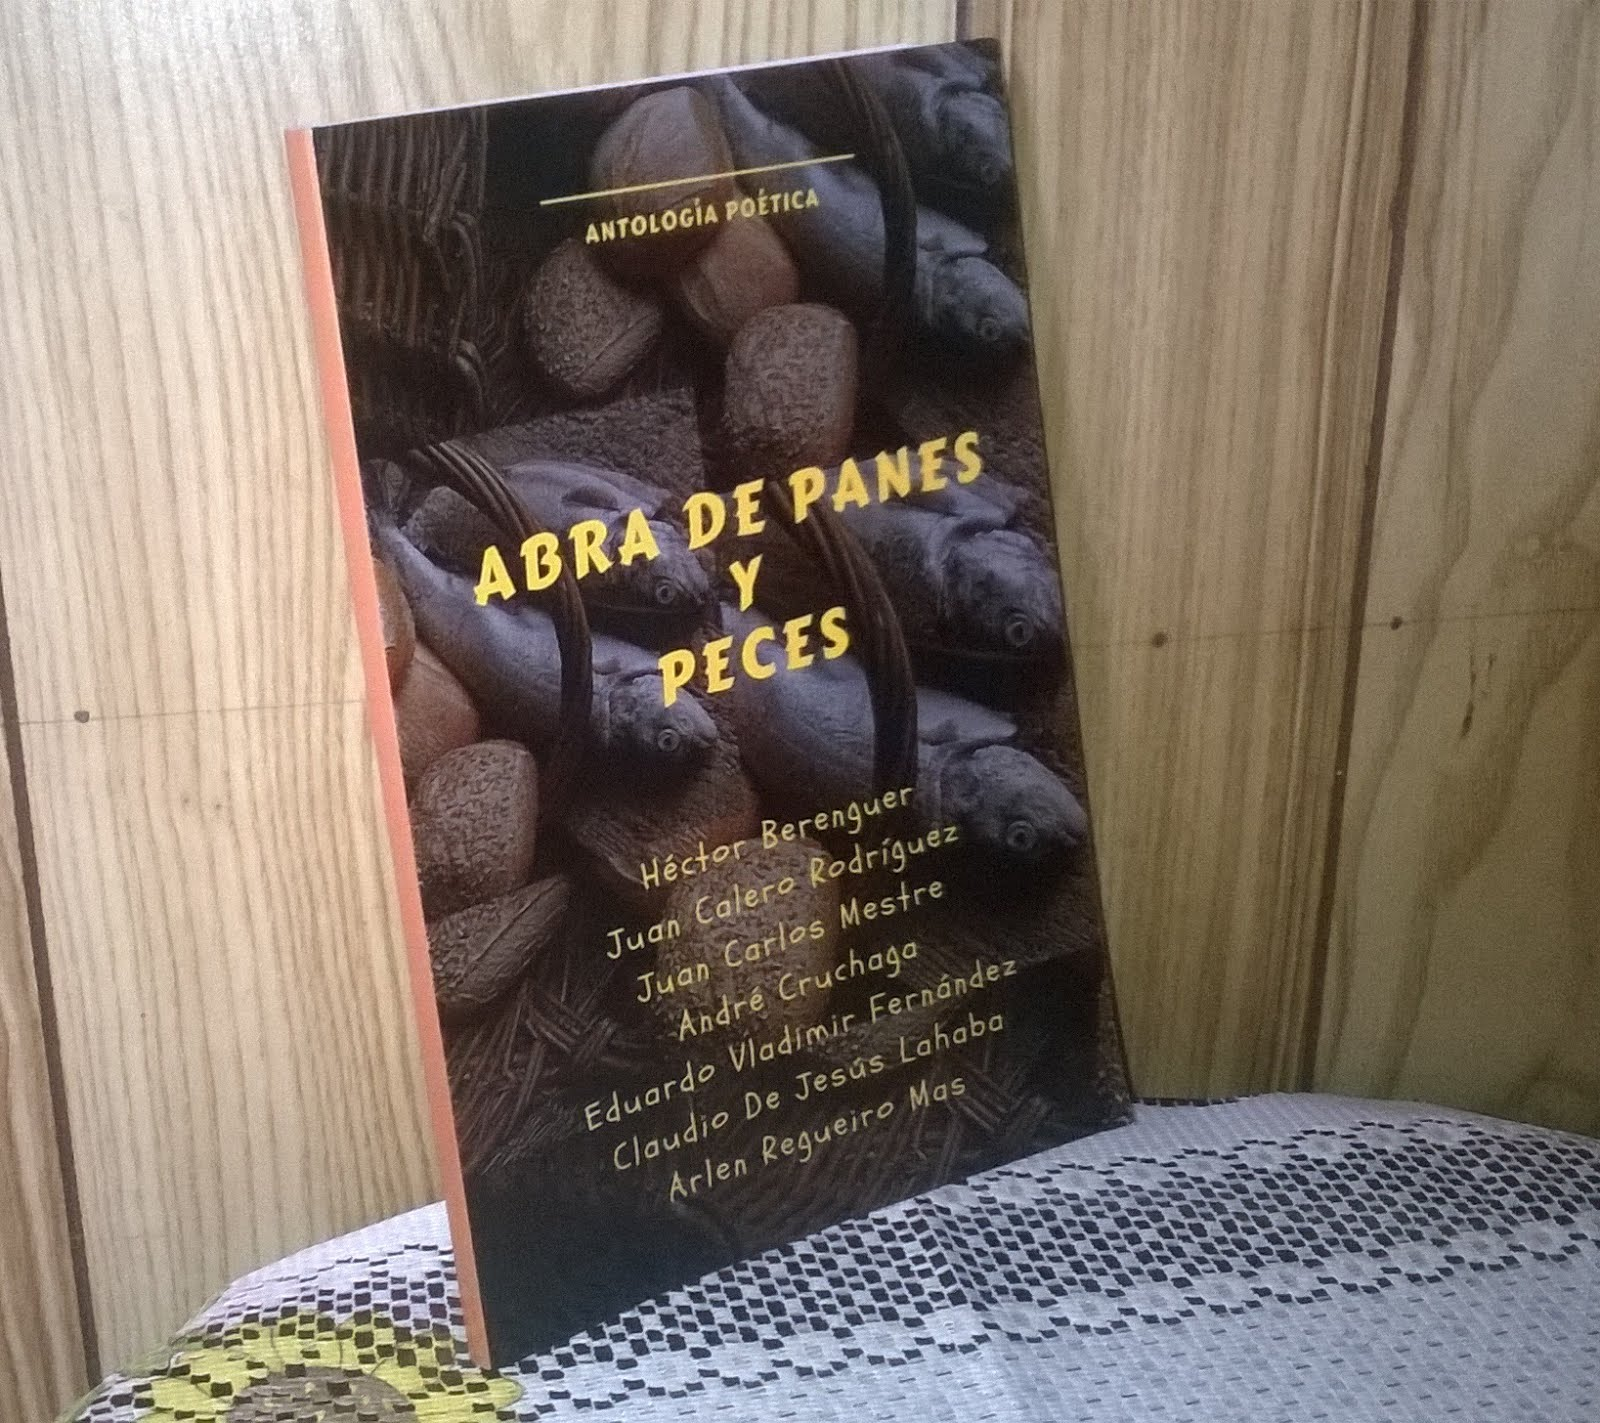 ABRA DE PANES Y PECES